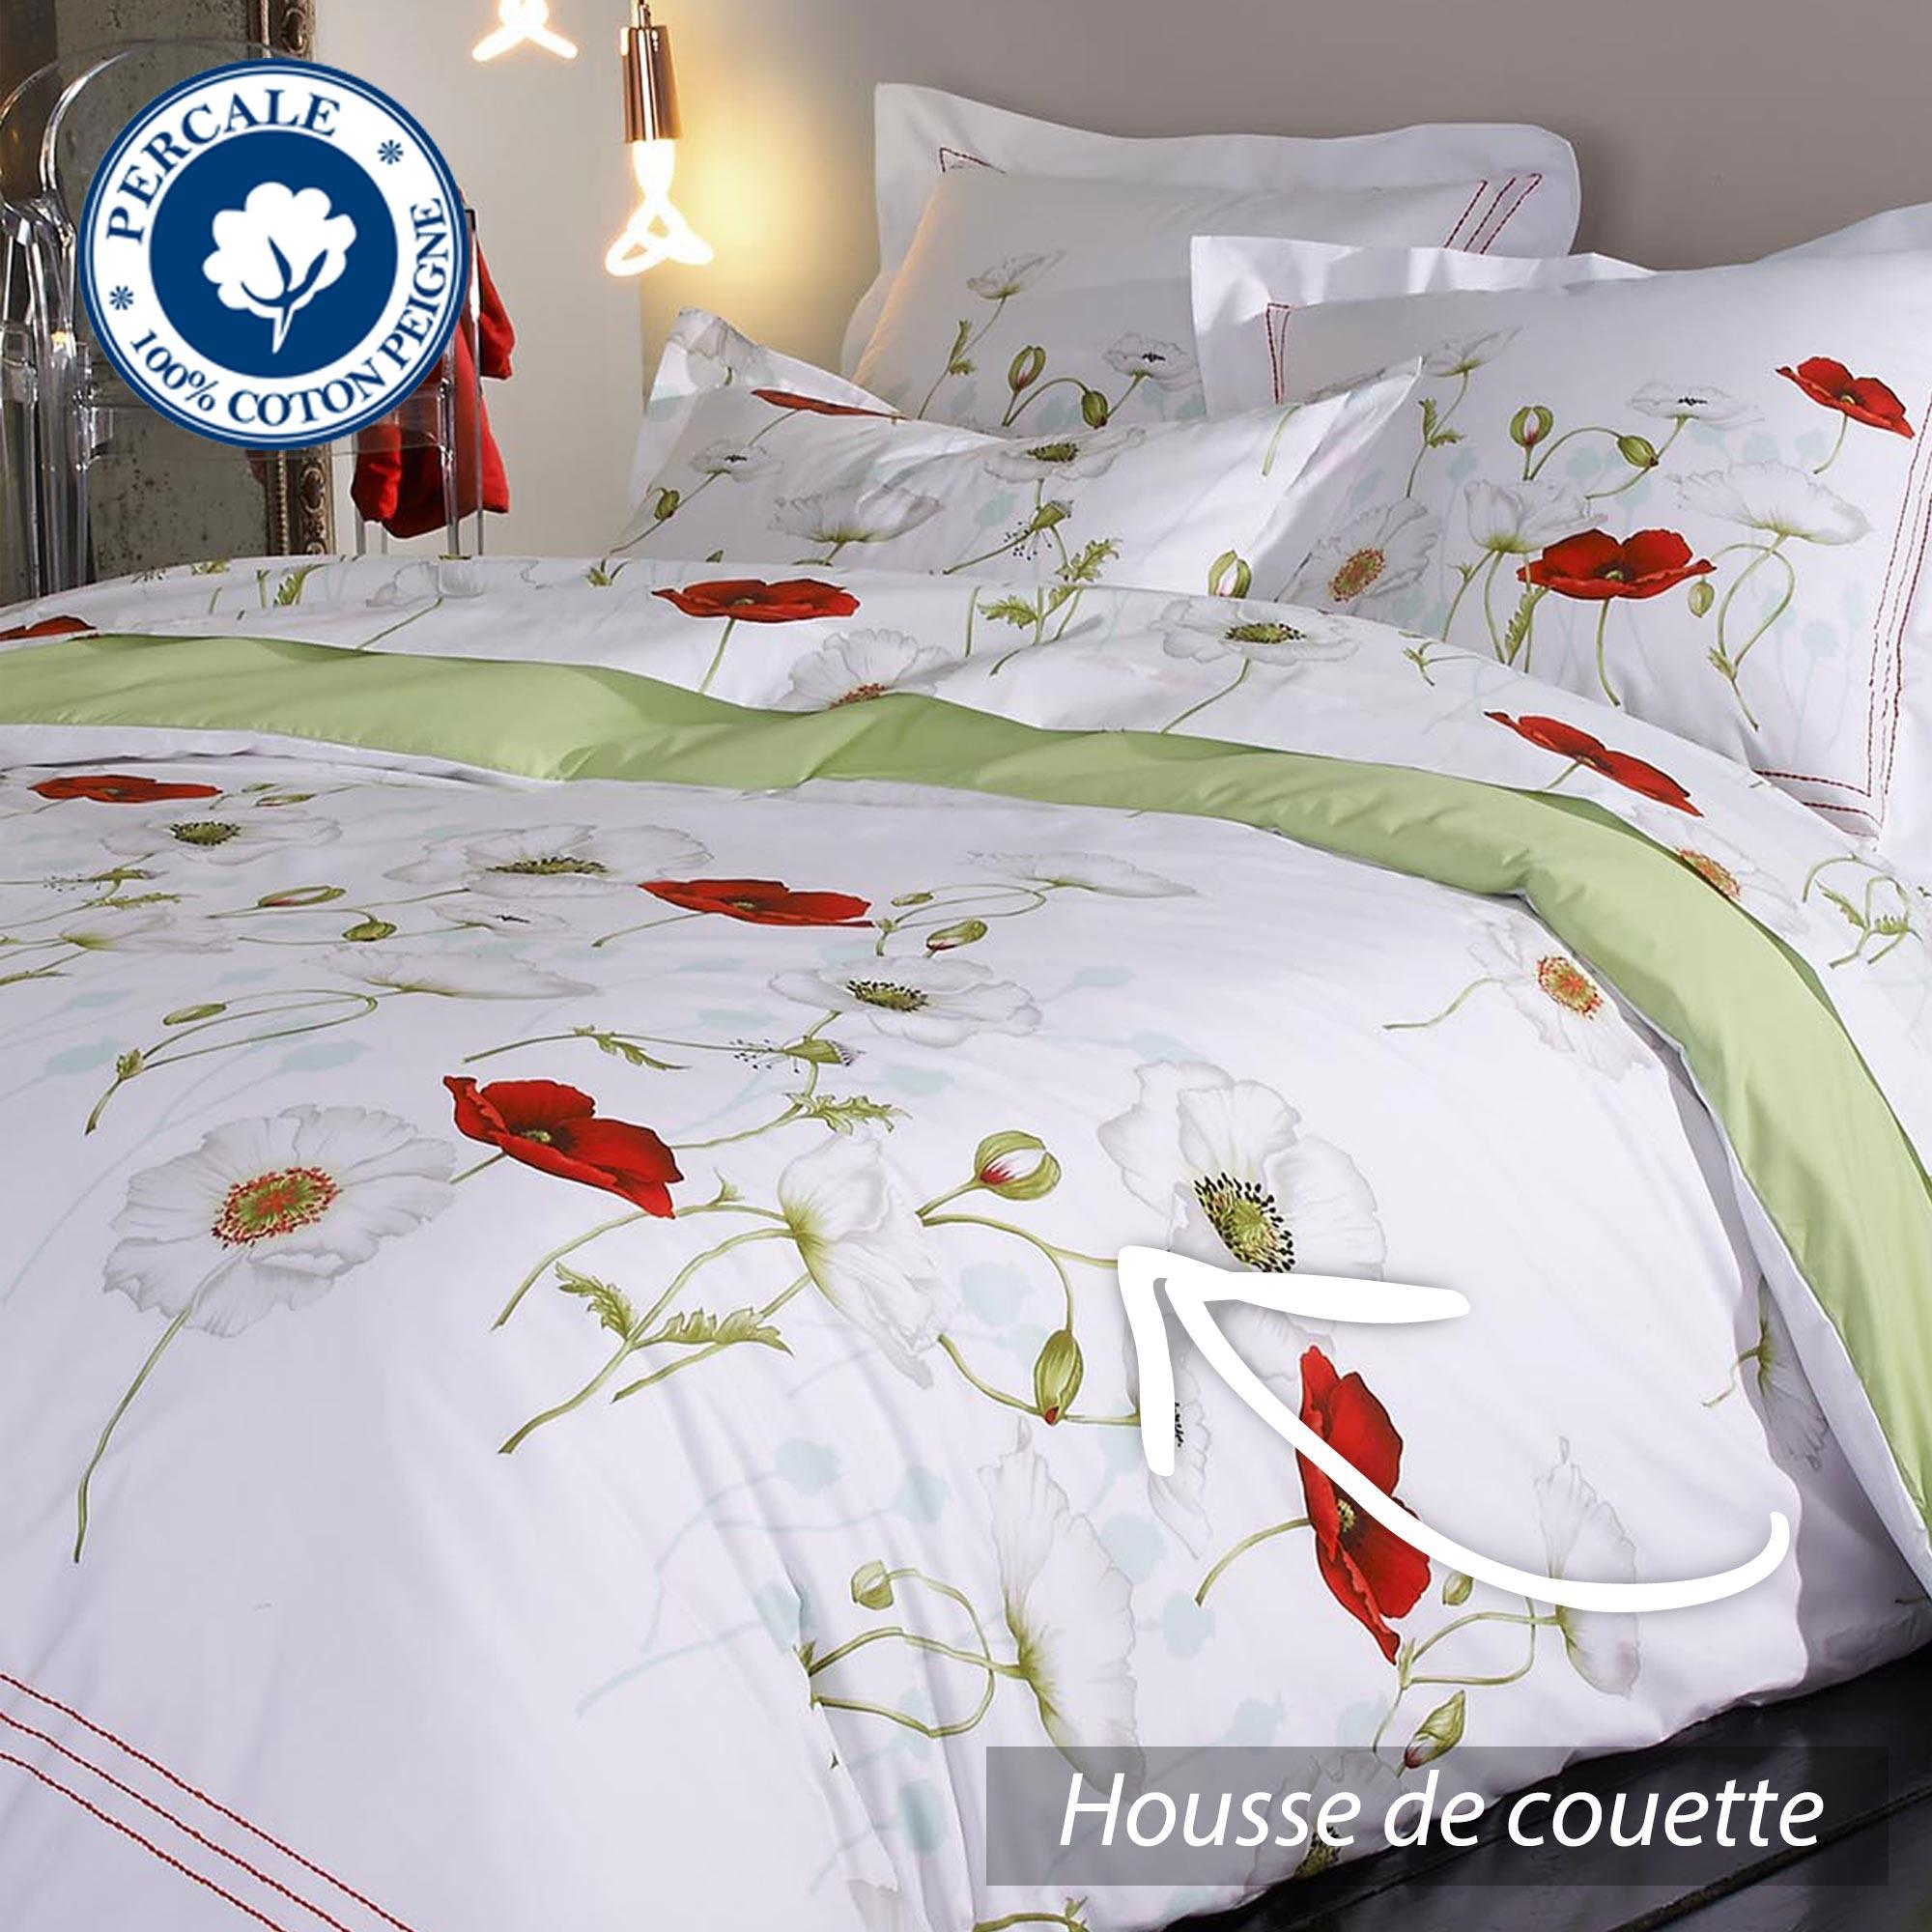 housse de couette percale pur coton peign 280x240 cm. Black Bedroom Furniture Sets. Home Design Ideas